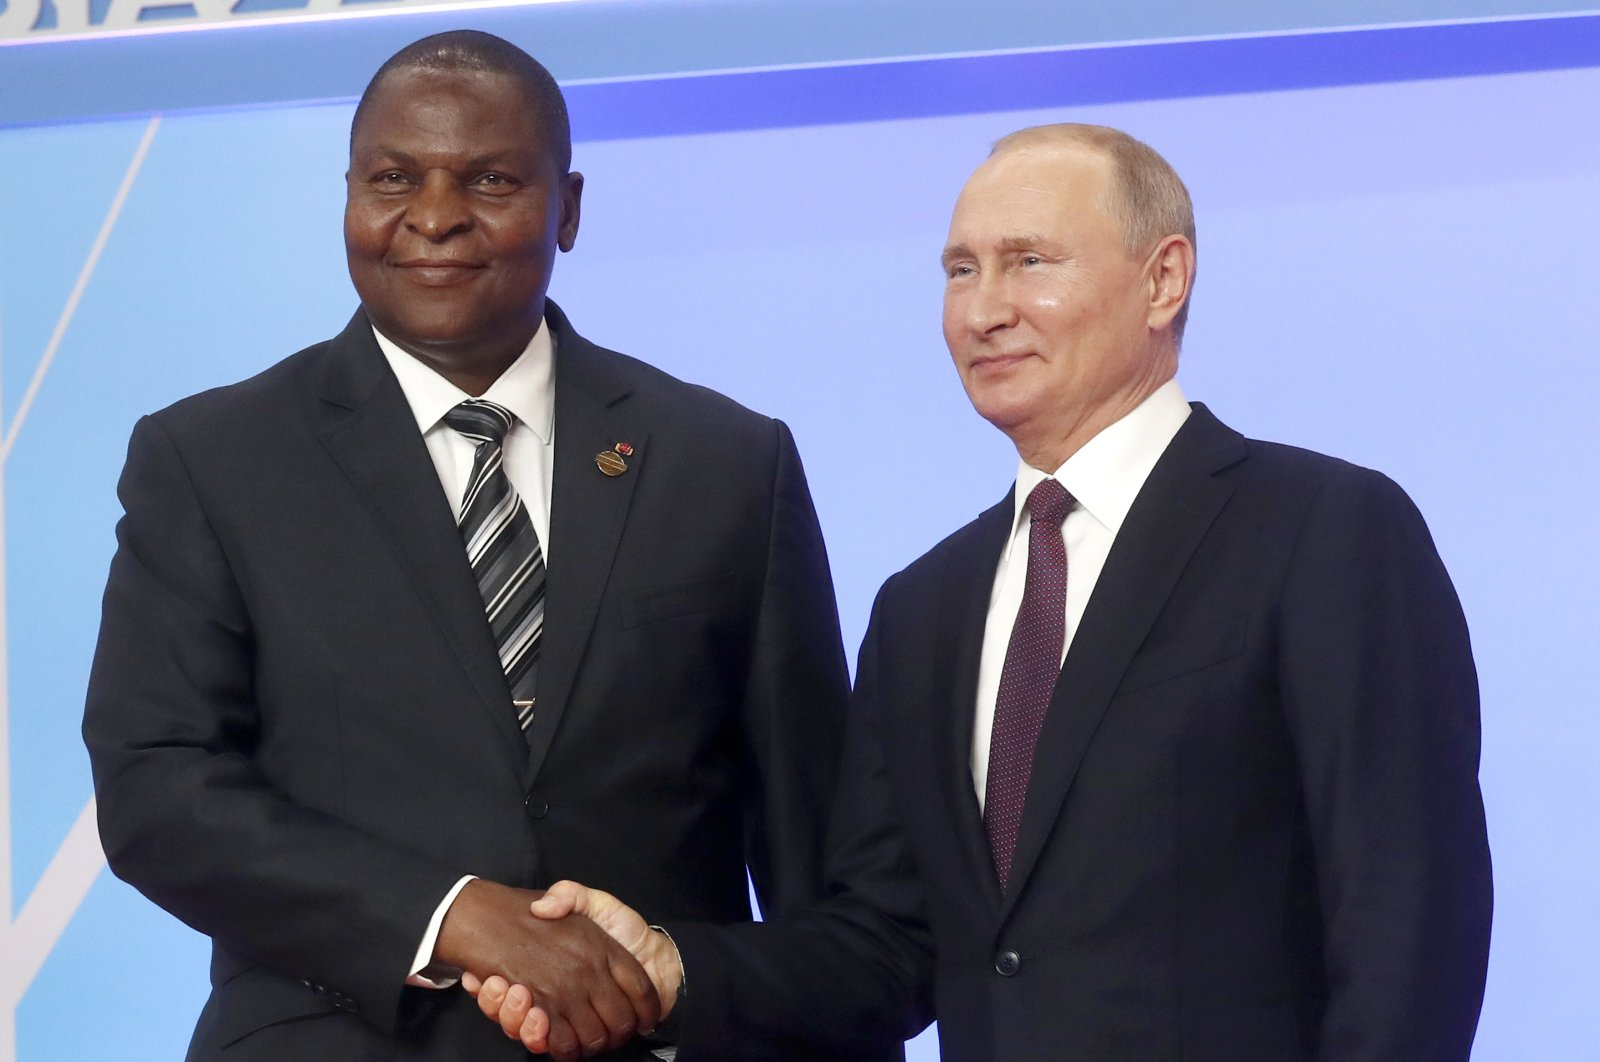 Russian President Vladimir Putin (R) and President of the Central African Republic Faustin Archange Touadera pose for a photo during a welcome ceremony of the Russia-Africa summit in the Black Sea resort of Sochi, Russia, Oct. 23, 2019. (AP Photo)